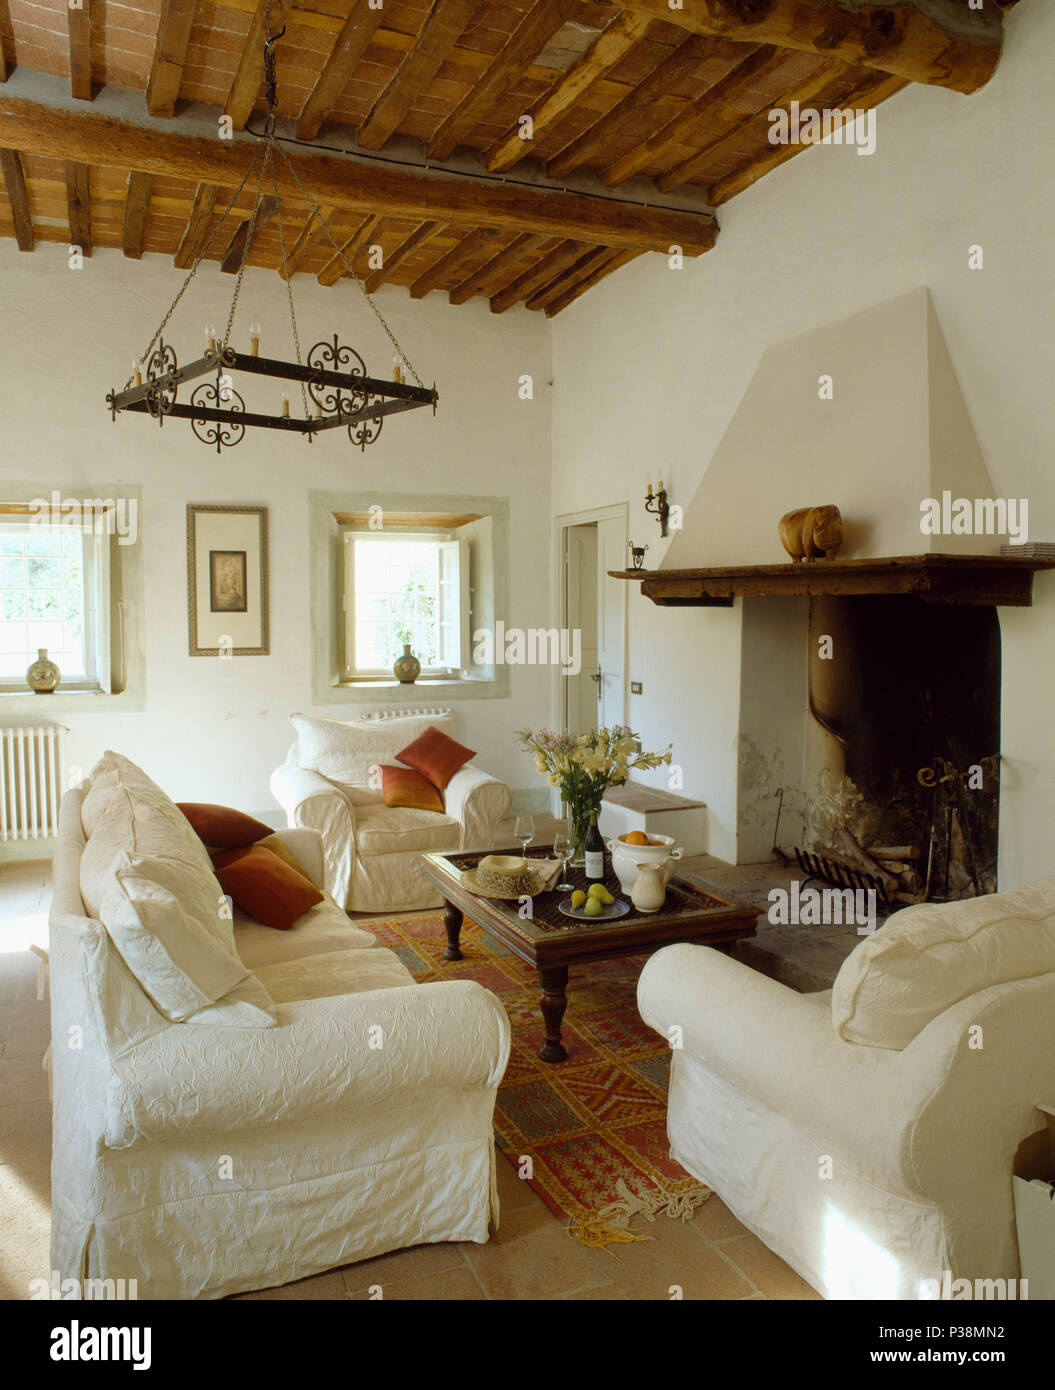 White Loose Covers On Sofa And Armchairs In Rustic Tuscan ...